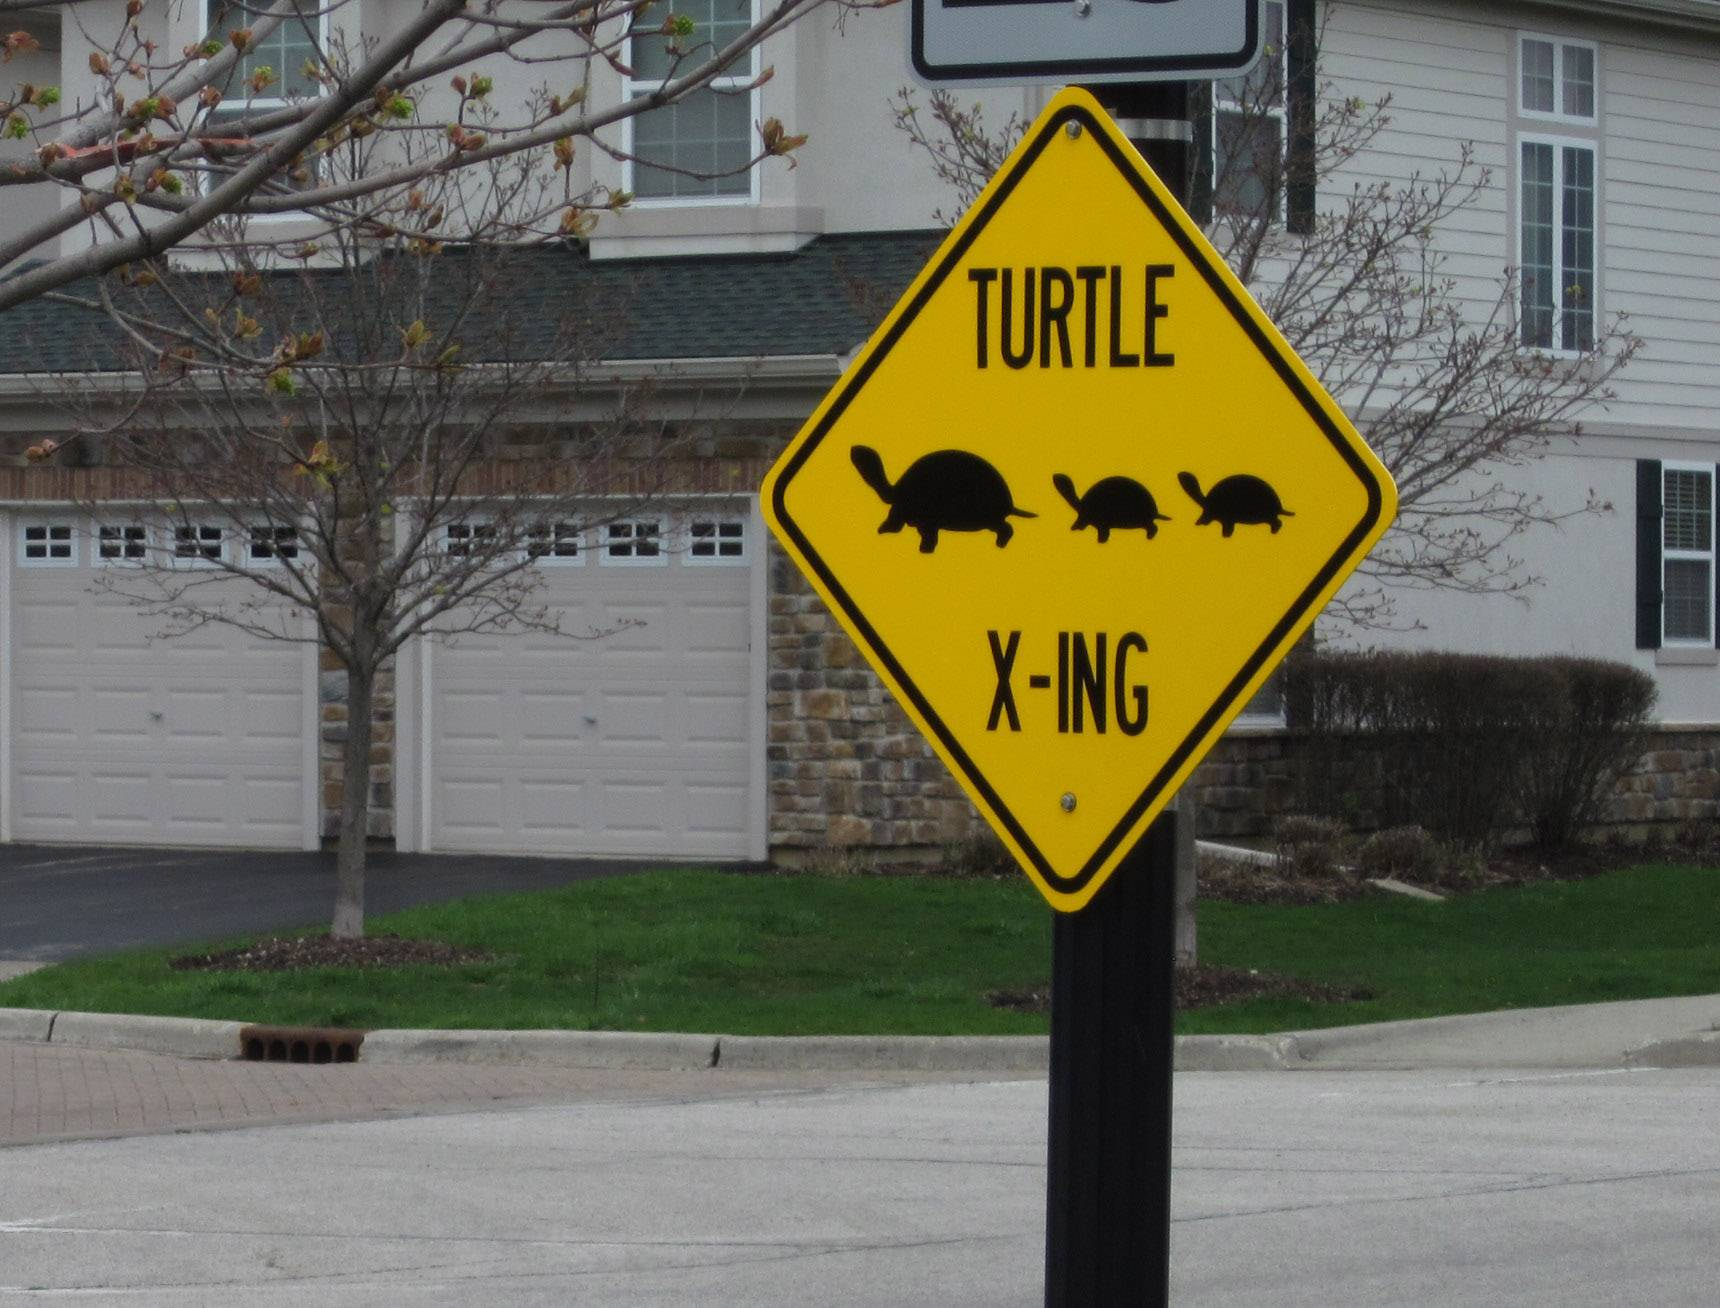 Vernon Hills trying to help turtles cross roads safely